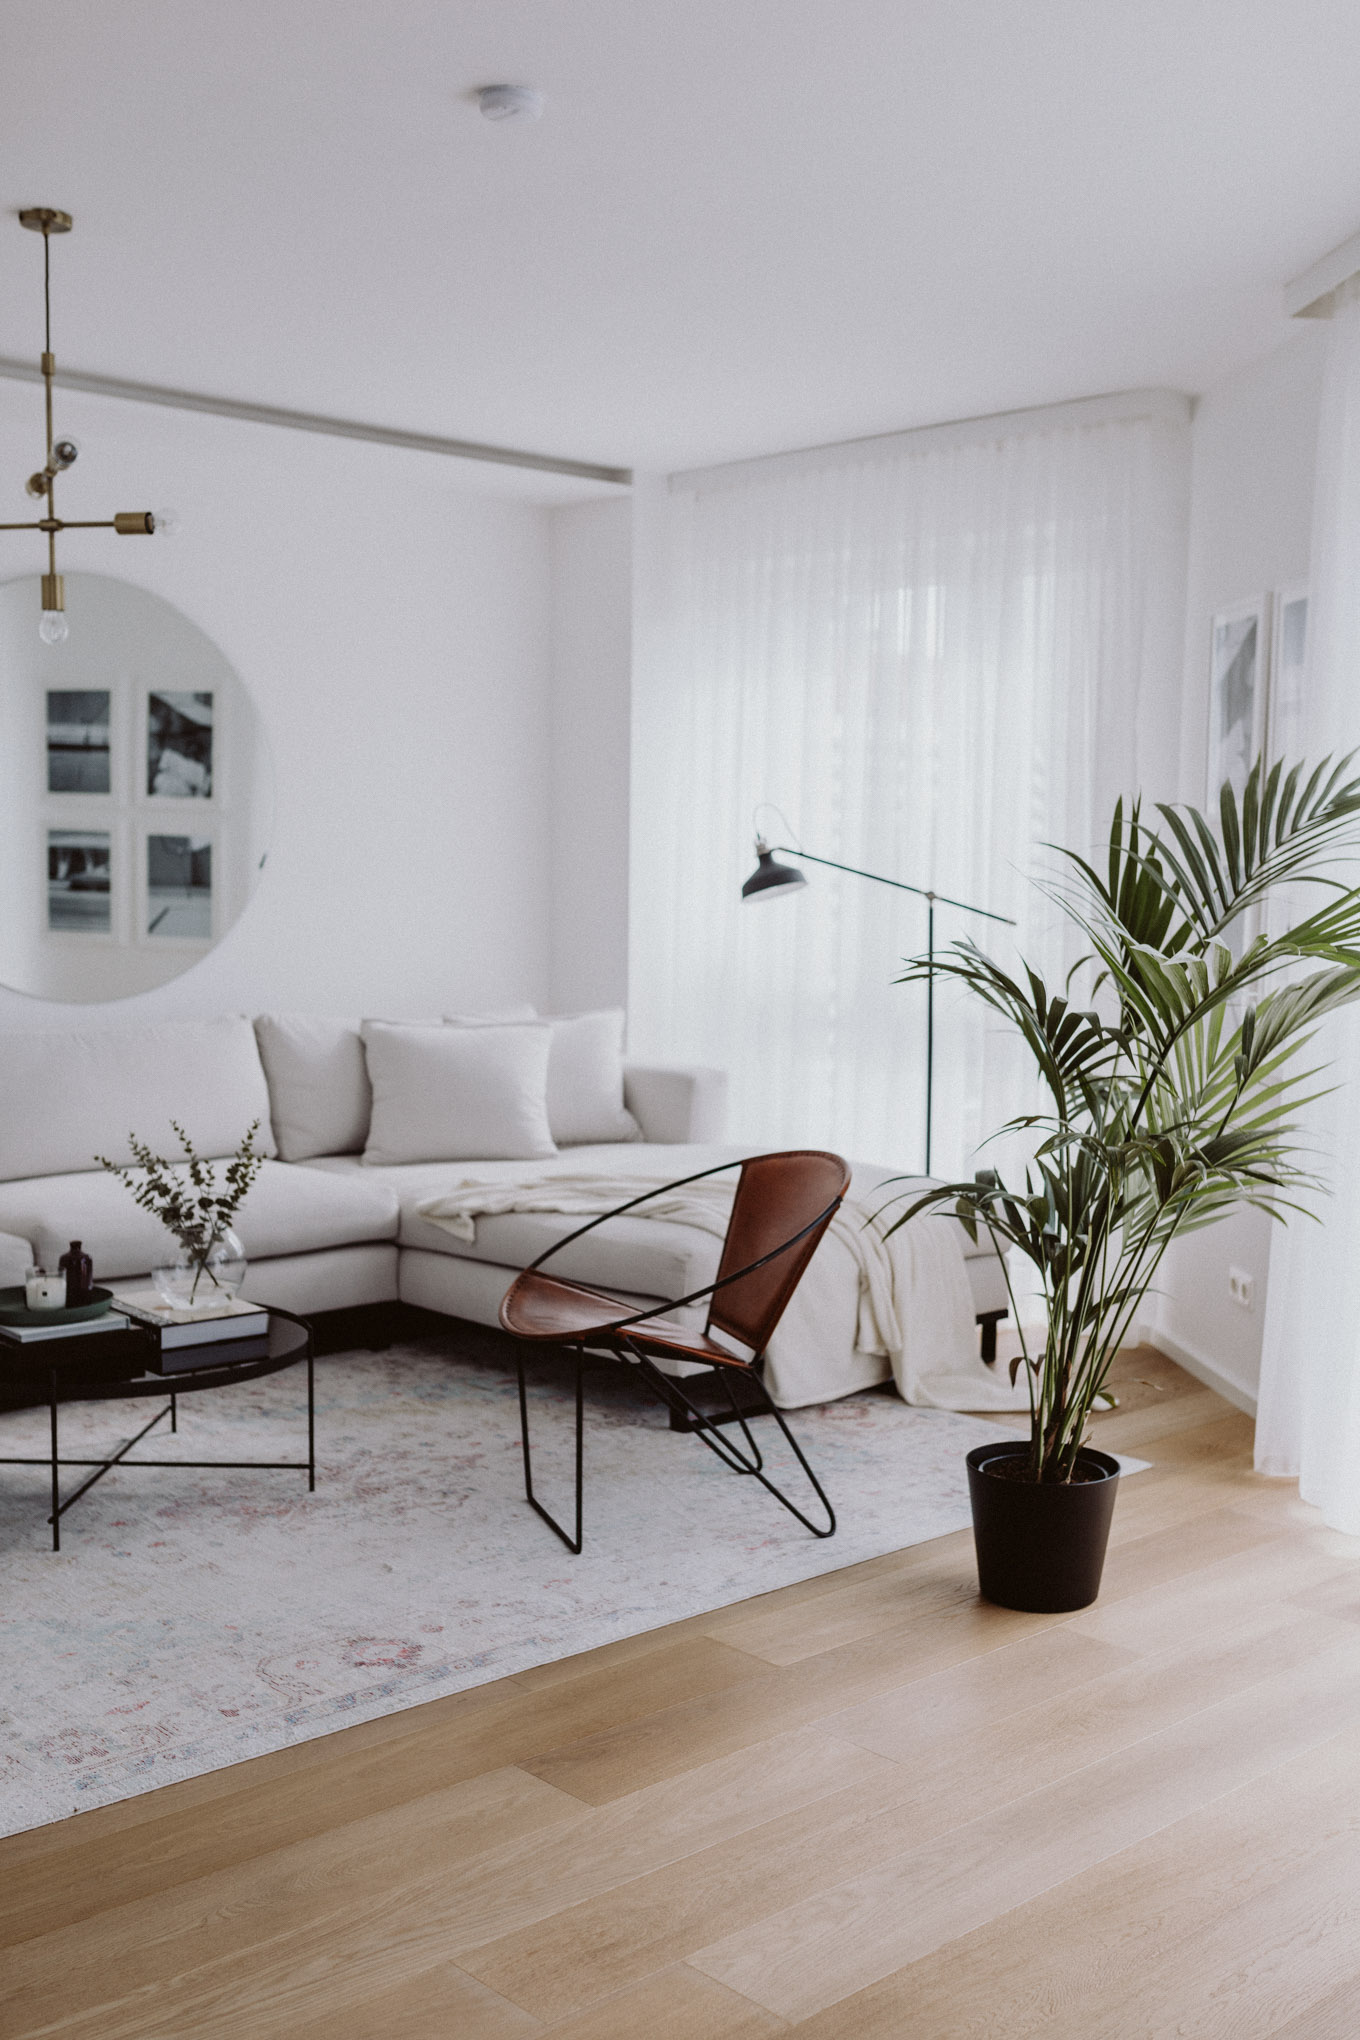 Marina Grünwald Homestory | The Daily Dose